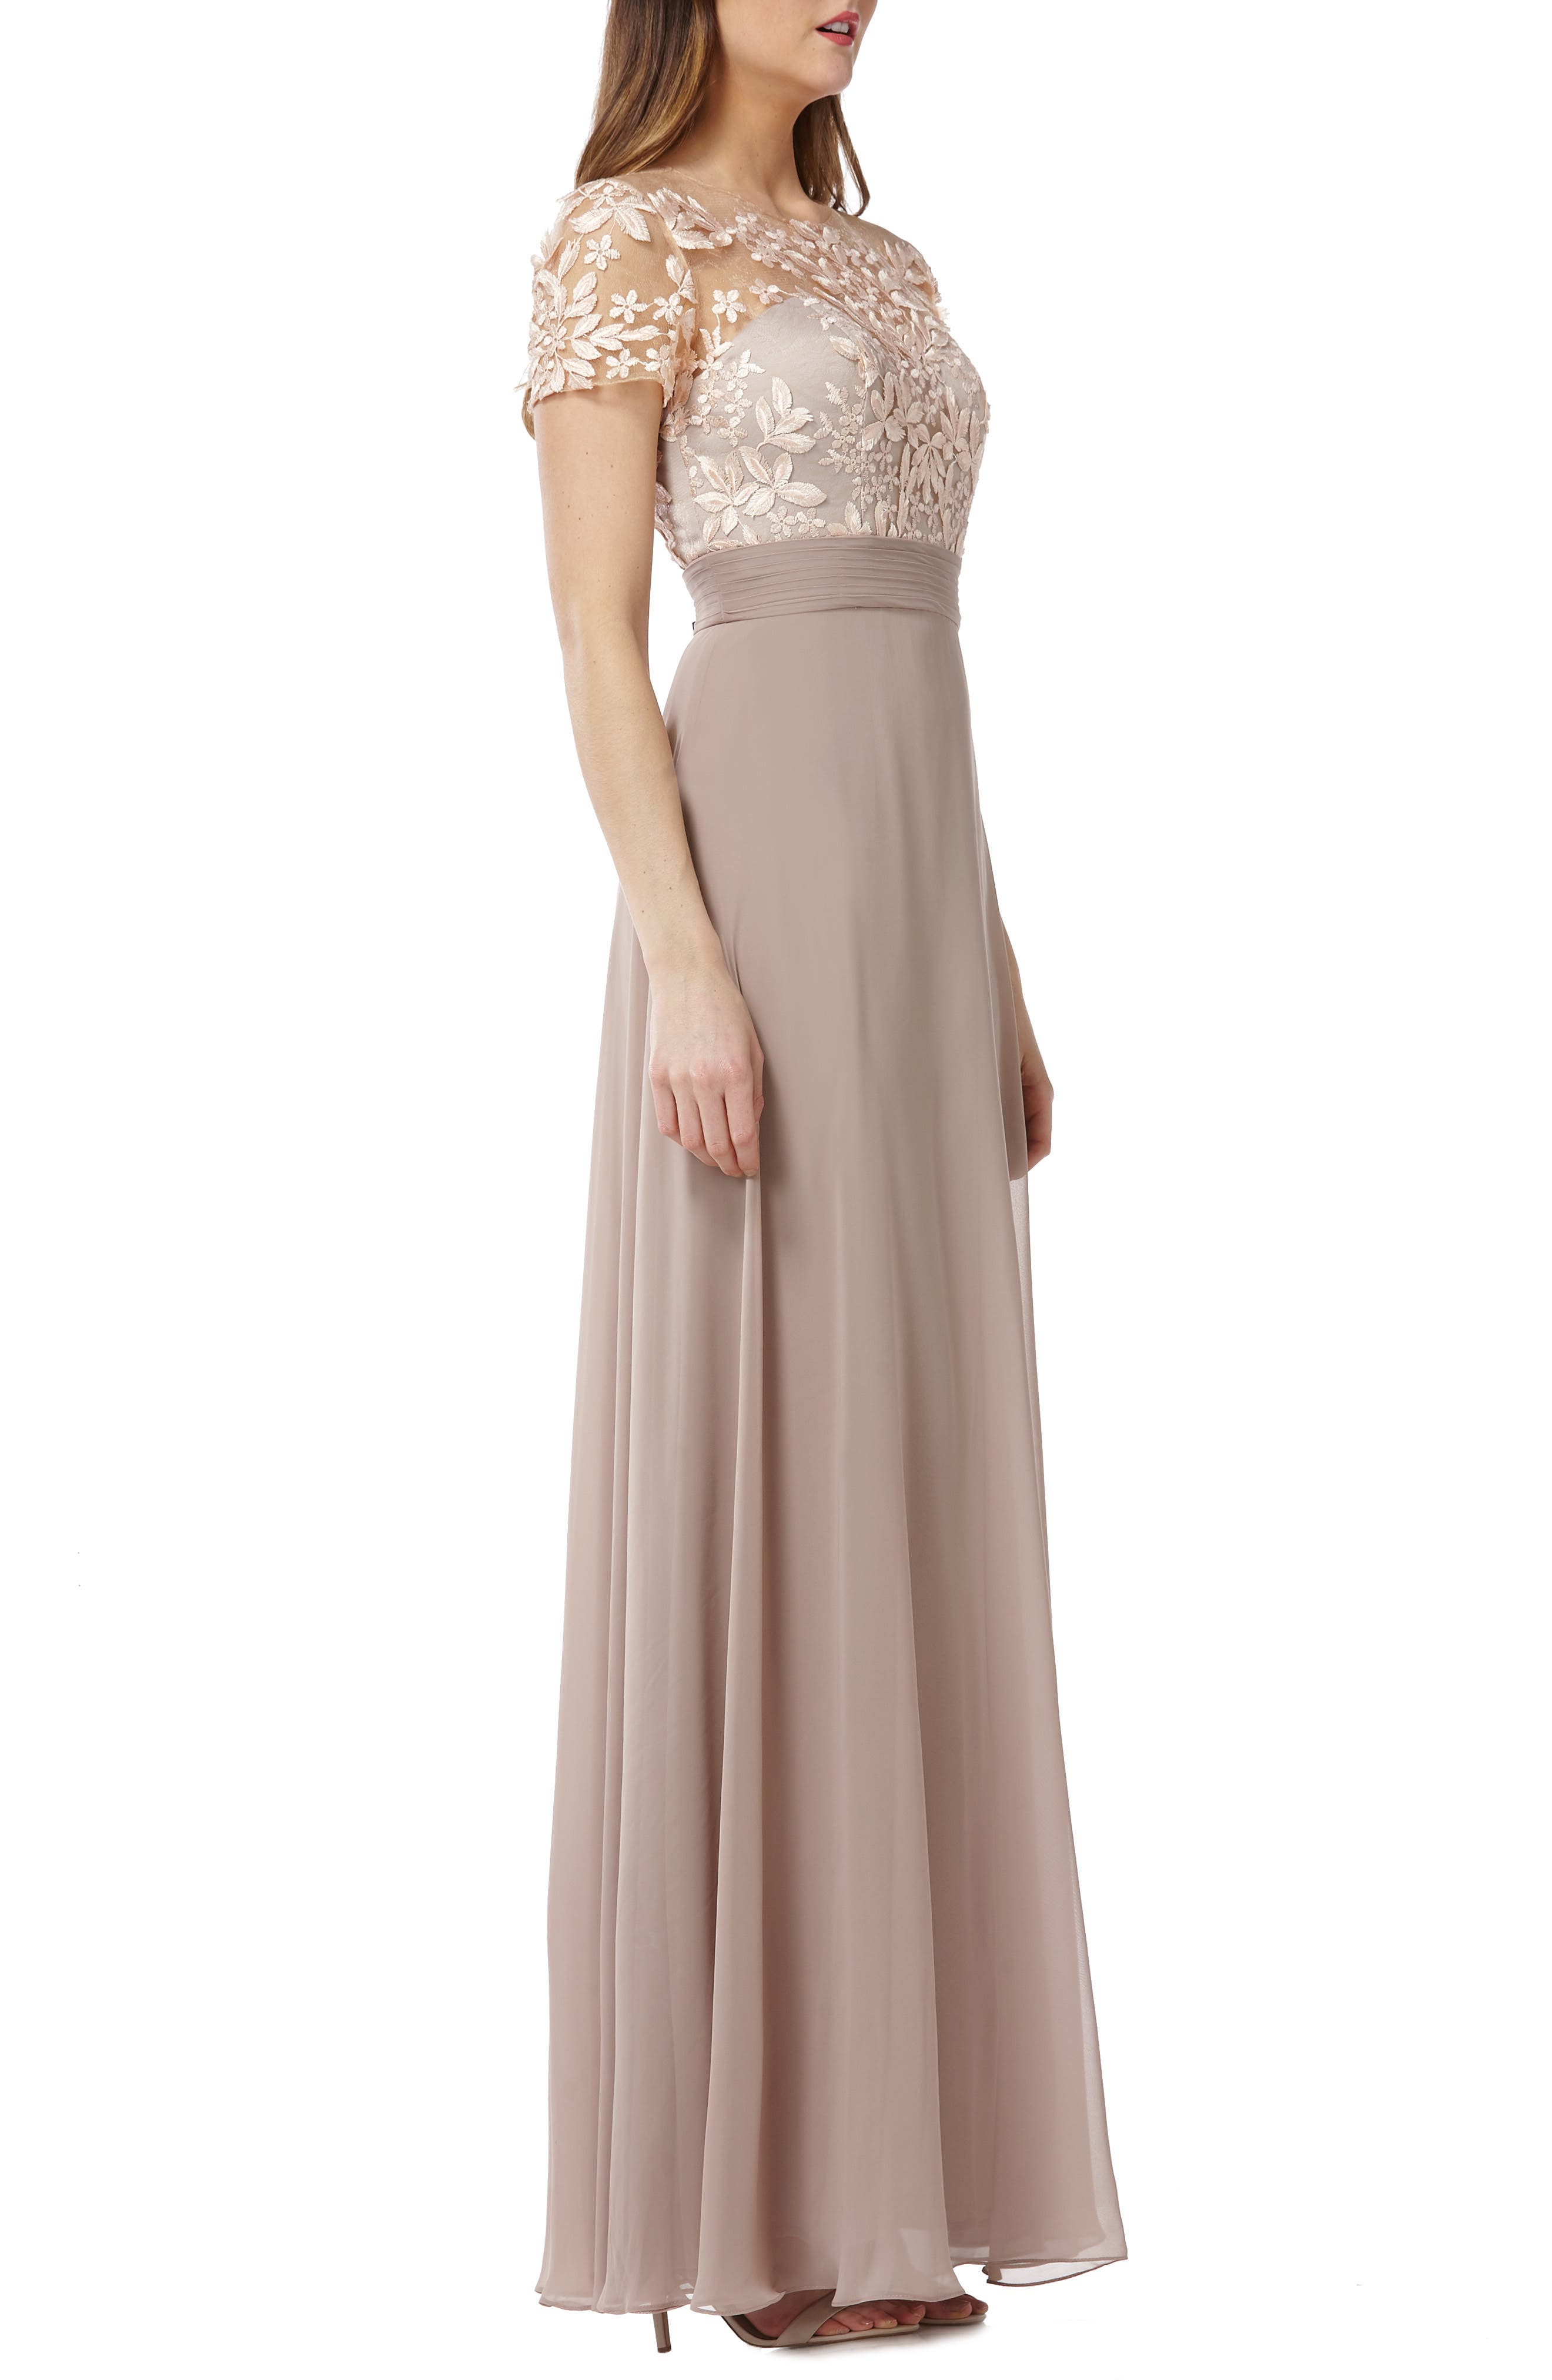 JS COLLECTIONS,                             Embroidered Illusion Bodice Gown,                             Alternate thumbnail 3, color,                             BLUSH/ NUDE